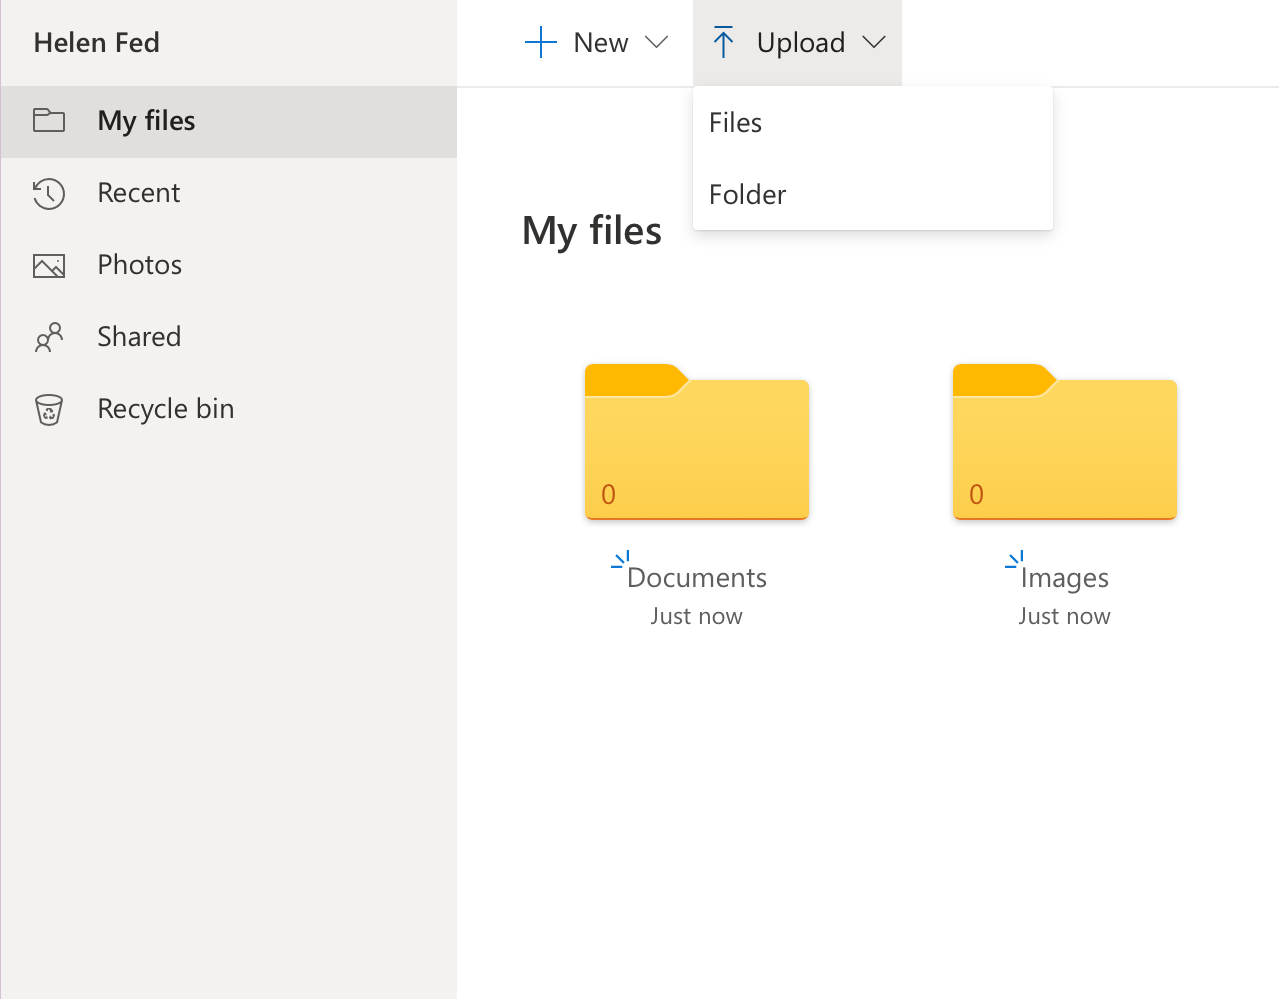 Click Upload, then Files